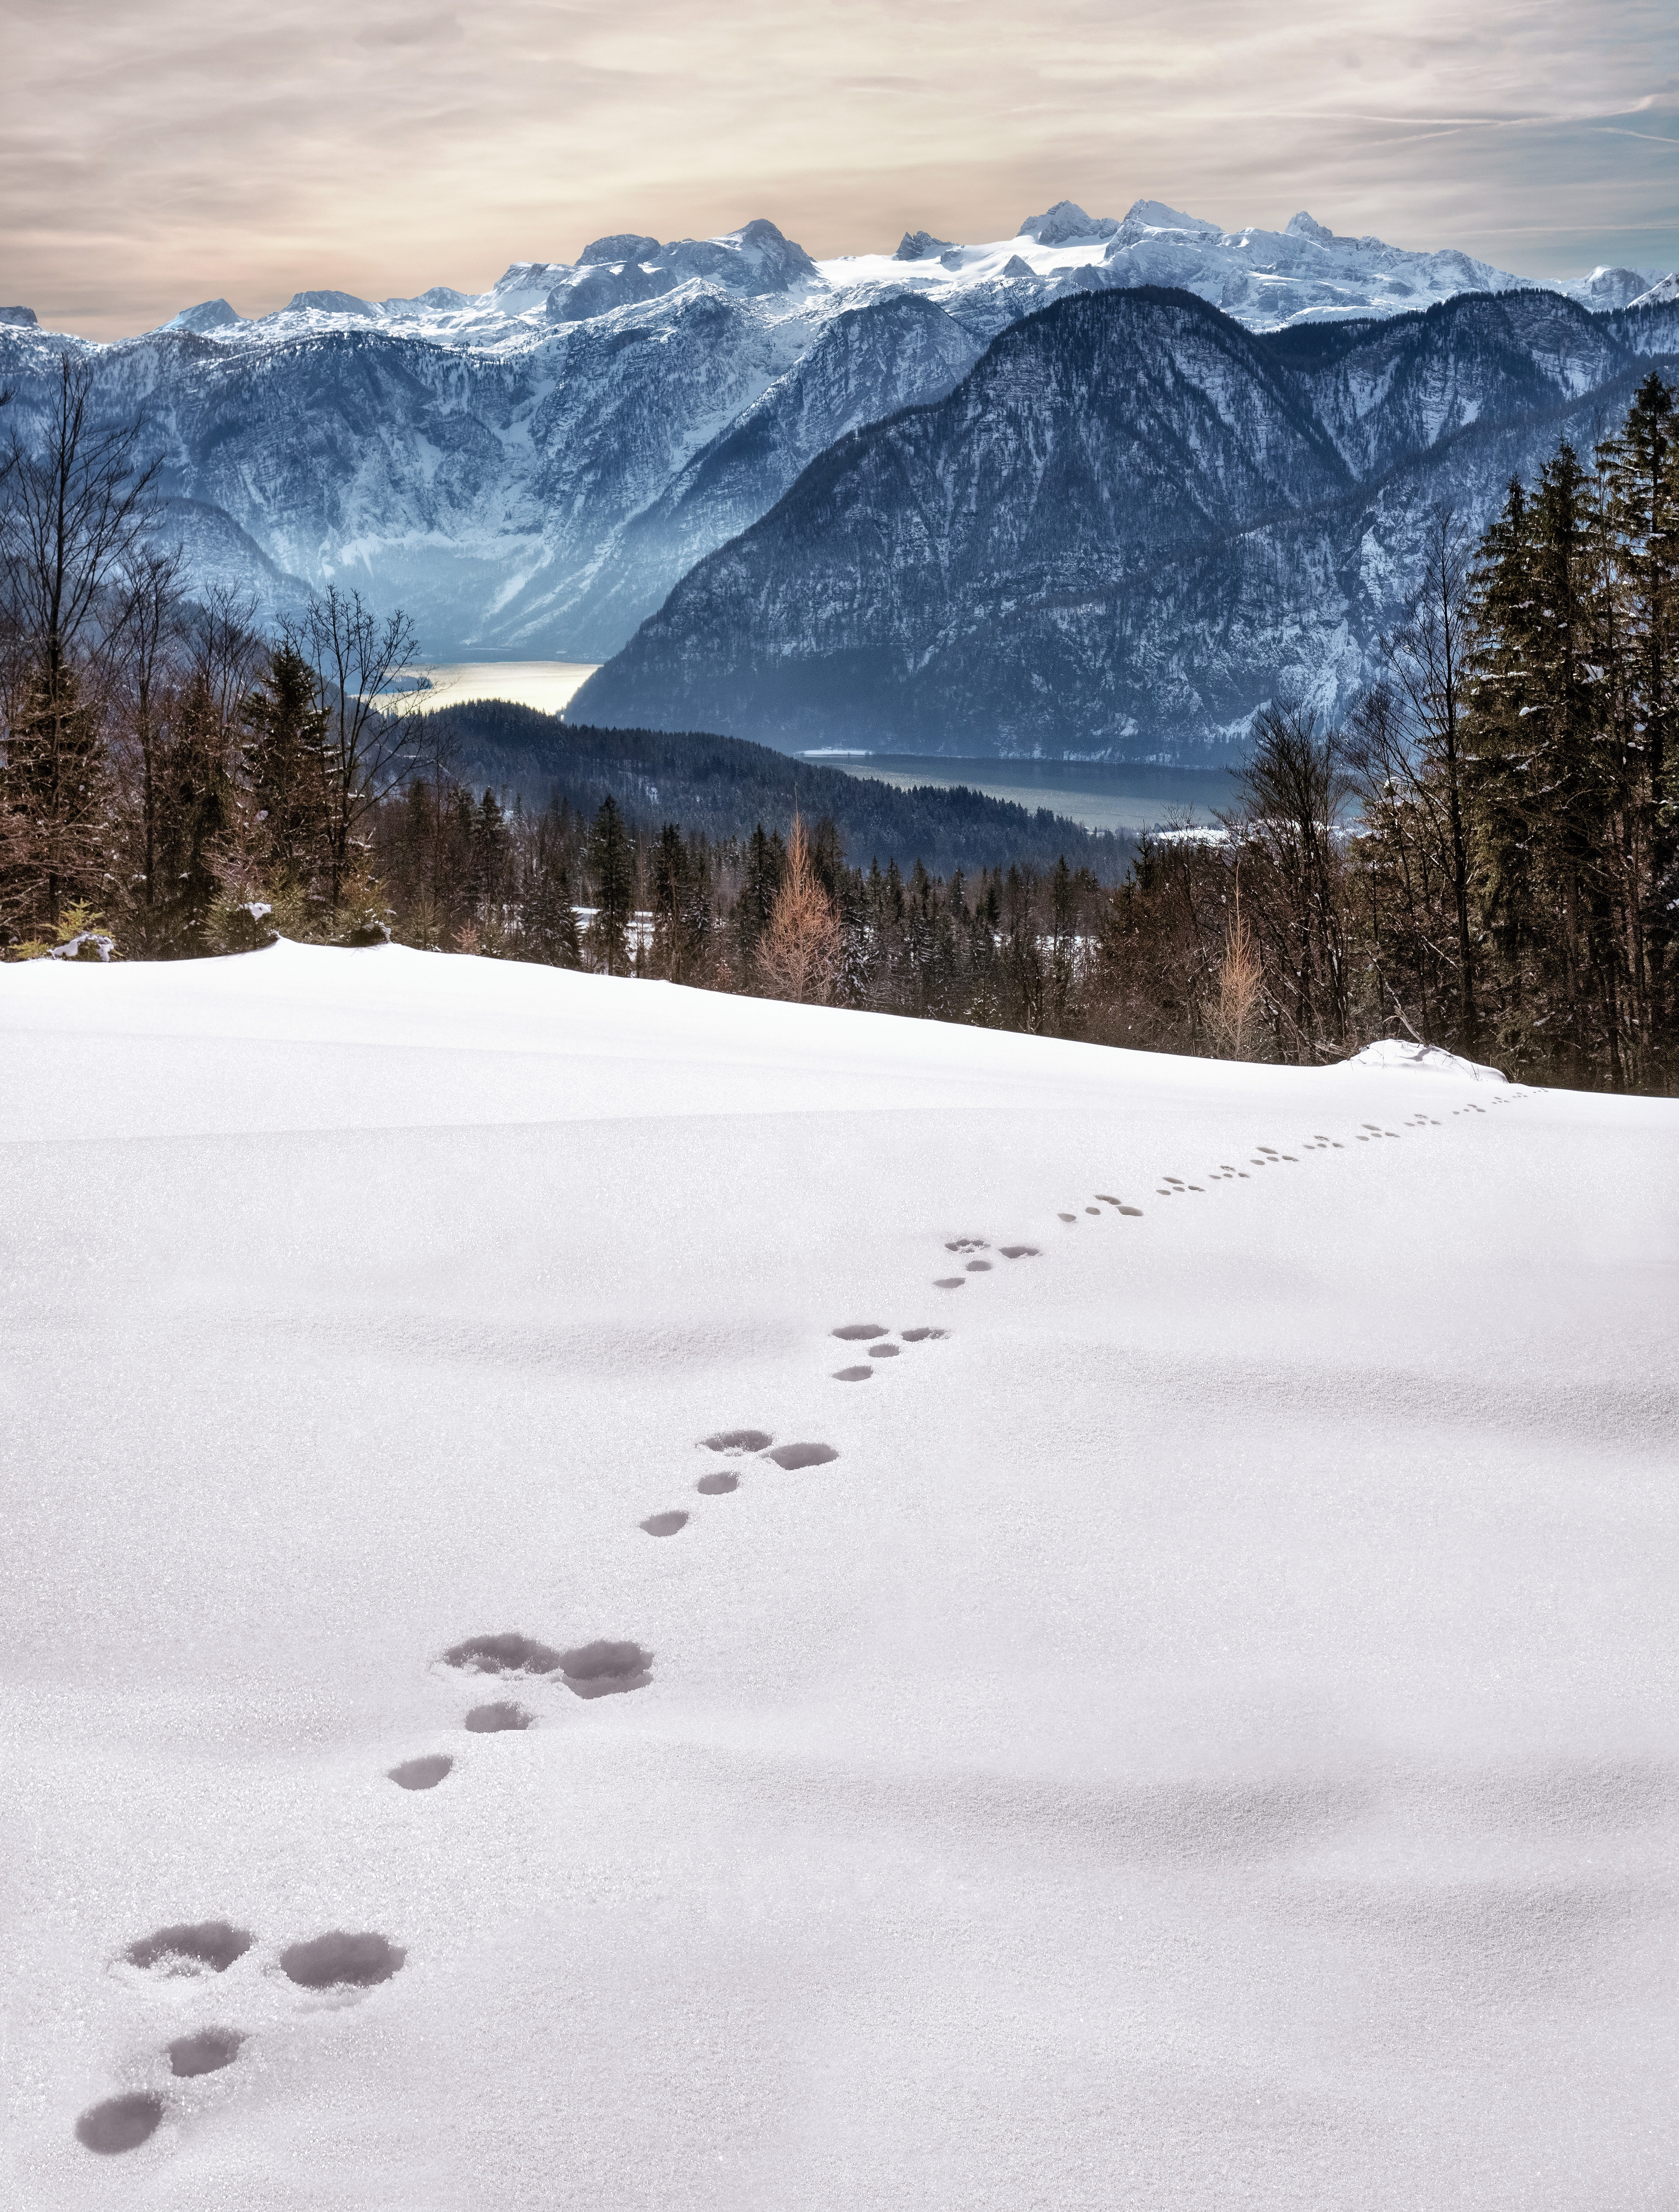 Animal Foot Prints on Snow Near Mountain at Daytime, Outdoors, Wood, Winter landscape, Winter, HQ Photo